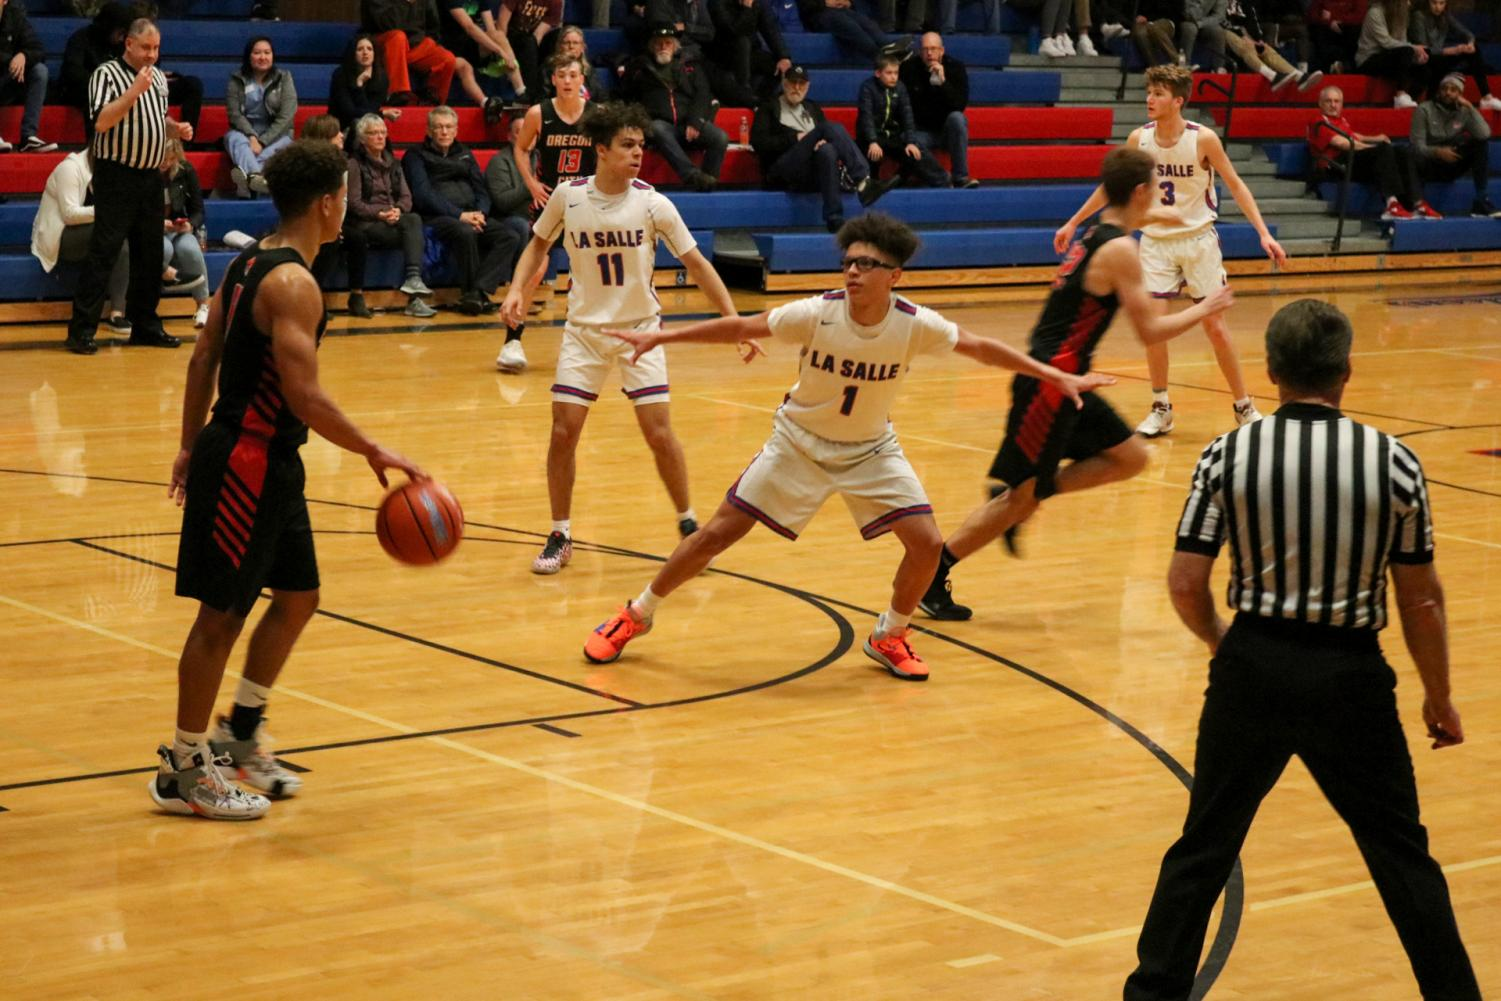 The+La+Salle+varsity+boys+basketball+team+fell+short+against+Oregon+City+with+a+final+score+of+33-44.+They+play+their+first+league+game+on+Tuesday%2C+Jan.+14+against+Parkrose.